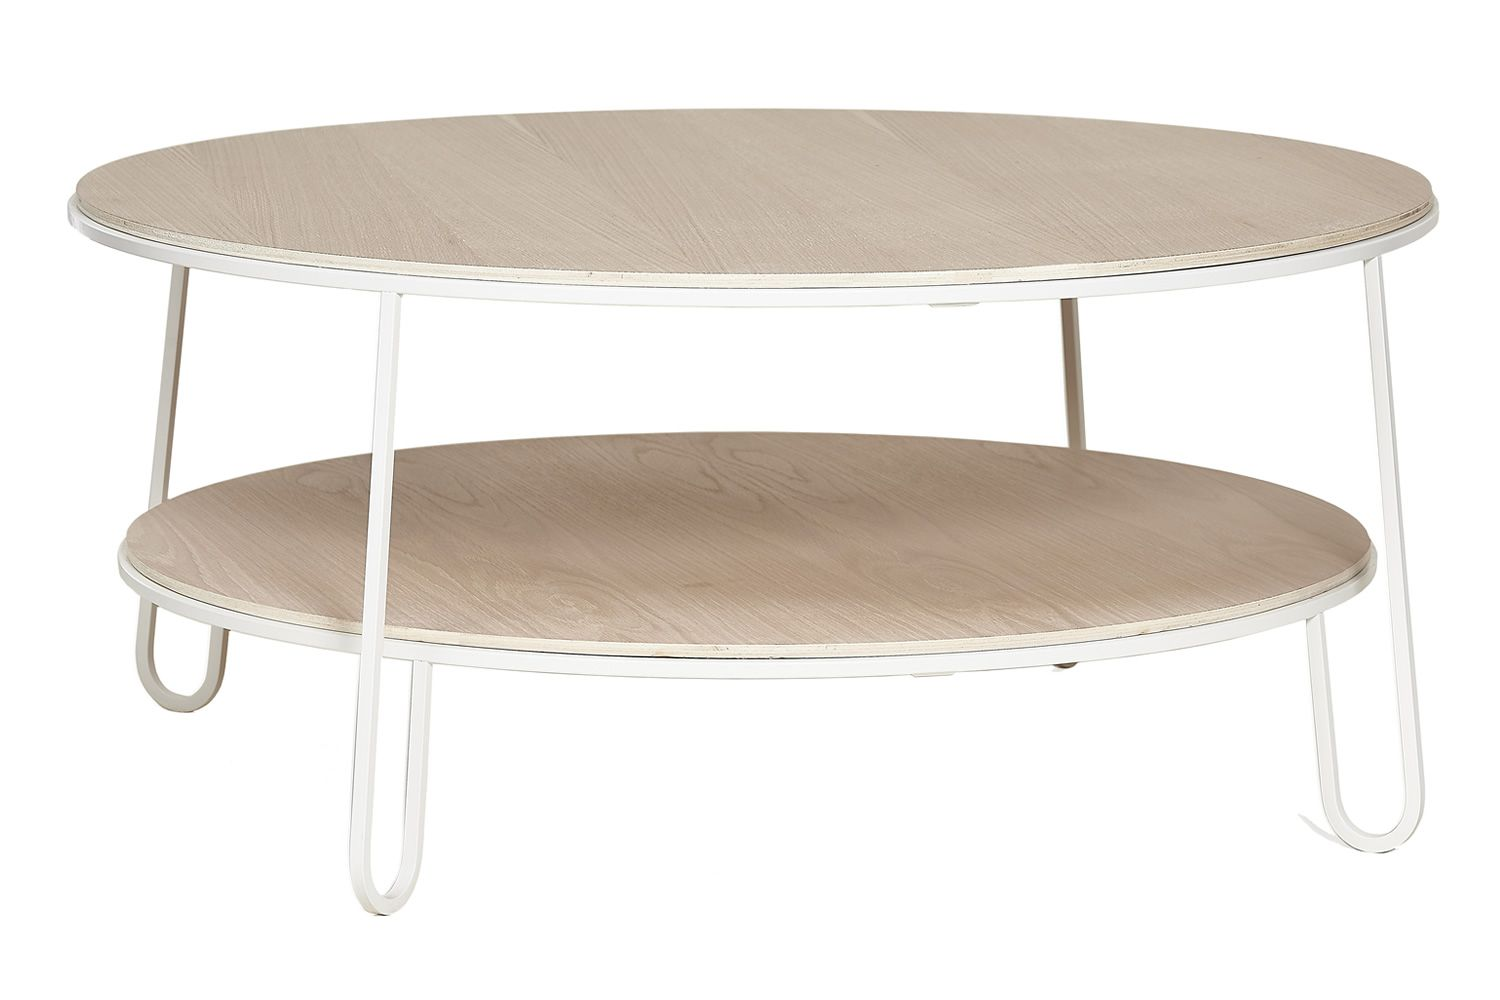 Table Ronde Basse Bois Table Basse Ronde Bois Et Metal Blanc Boutique Gain De Place Fr